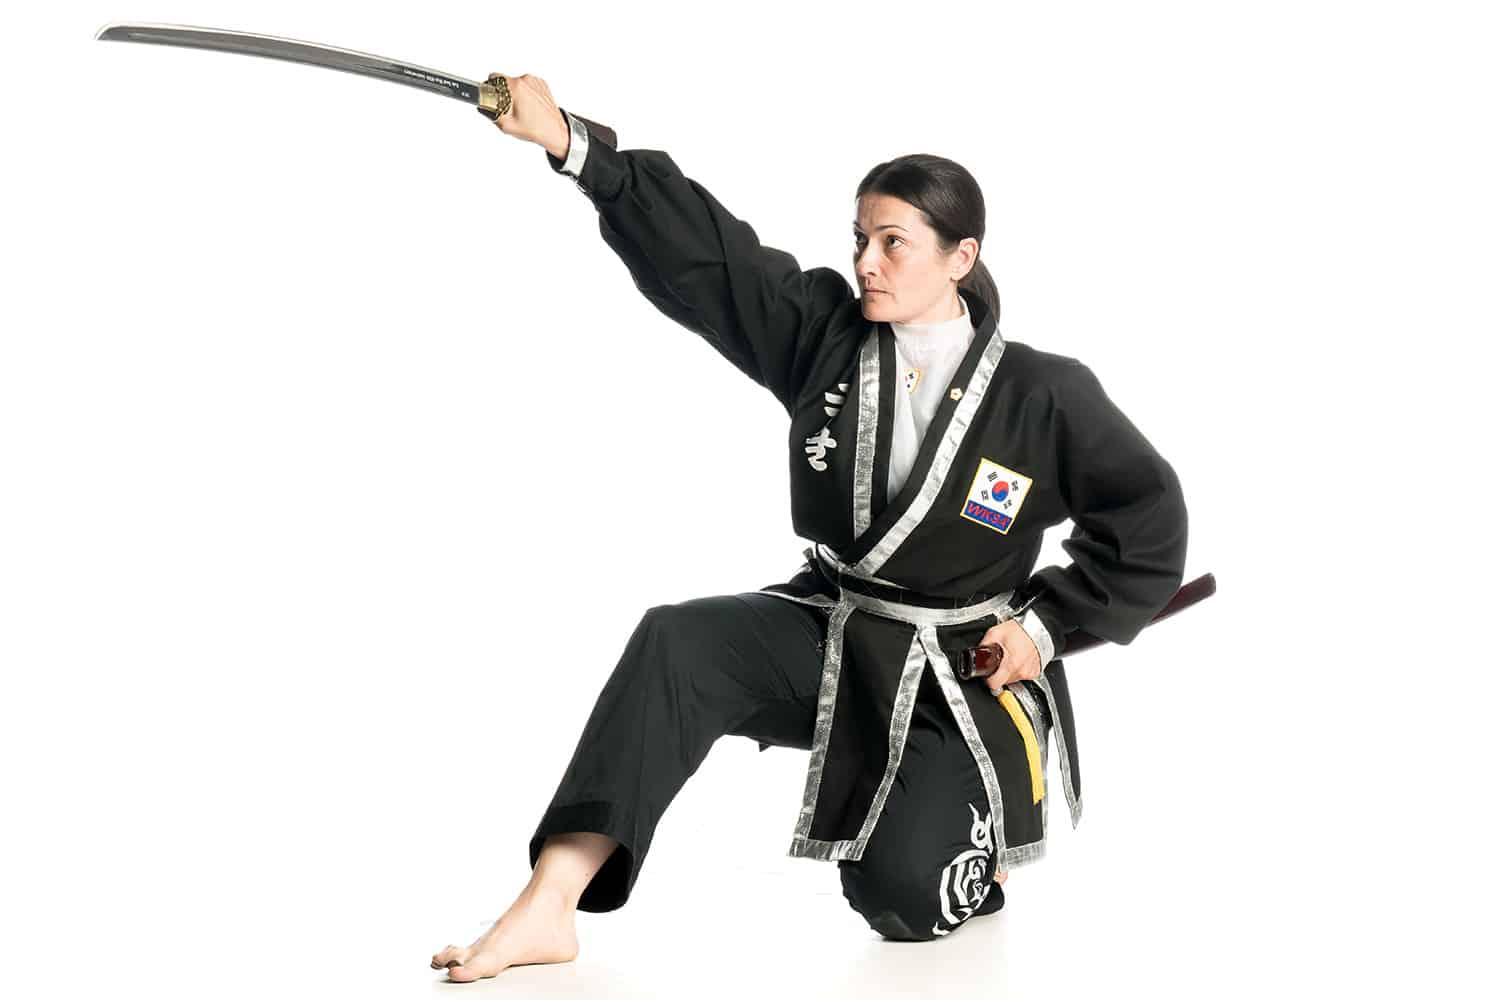 Justine Watson Kuk Sool Won Black belt weapons training